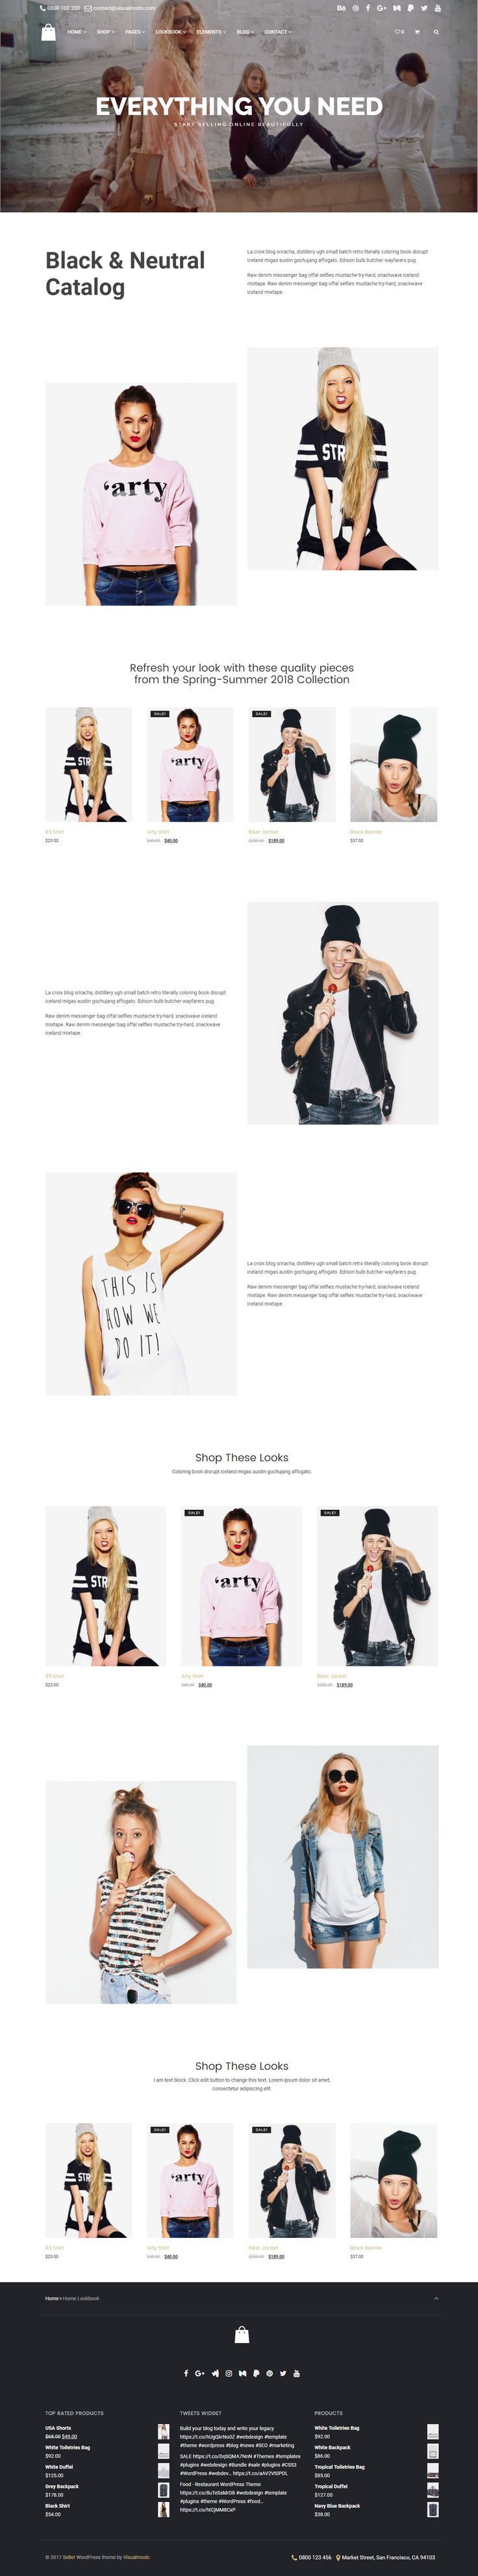 Seller - eCommerce WordPress Theme for creative and modern online Stores - Responsive, Clean, Modern, Stylish, Minimal and Multi-Purpose Template  https://visualmodo.com/th…/seller-ecommerce-wordpress-theme/ #webdesign #HTML5 #CSS3 #template #plugins #themes #WordPress #onepage #ecommerce #responsive #retina #marketing #website #blog #bootstrap #magazine #slider #business #siteBuilder #creative #Menu #Store #Shop #WooCommerce Take your site to the next level! Theme demonstrative website…